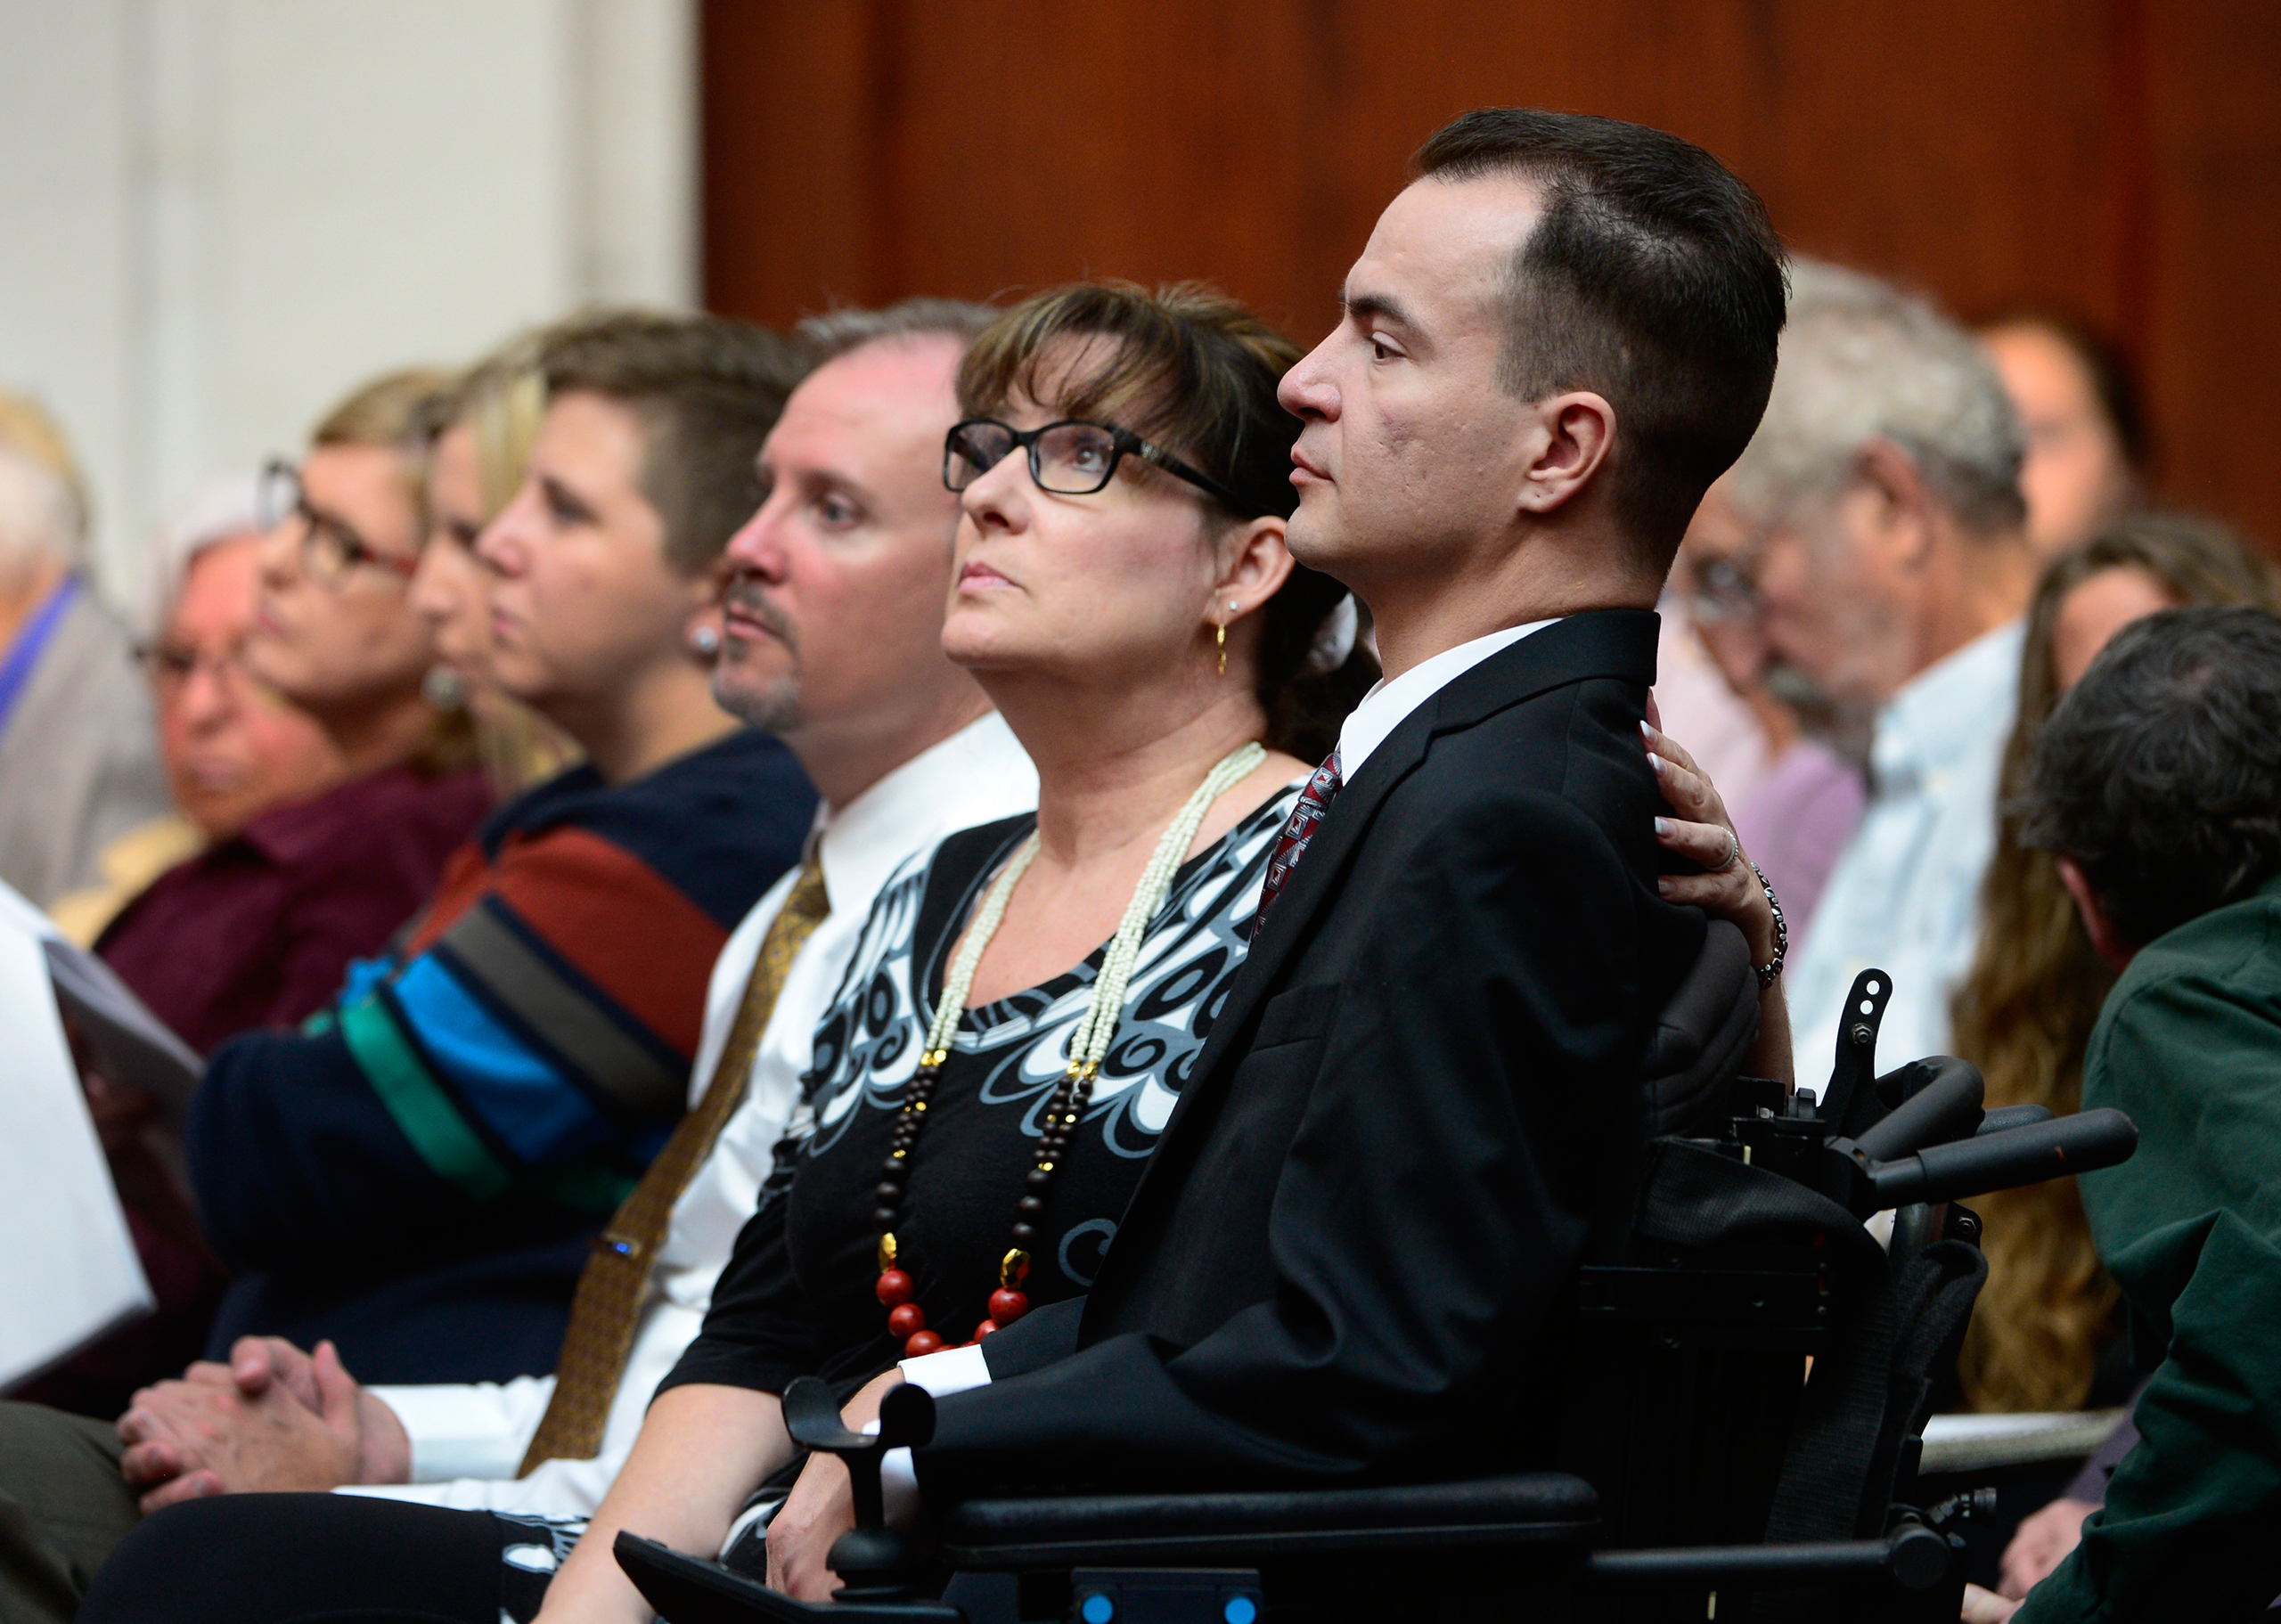 Brandon Coats, right, with his mother Donna Scharfenberg sitting by his side, Sept. 30, 2014.